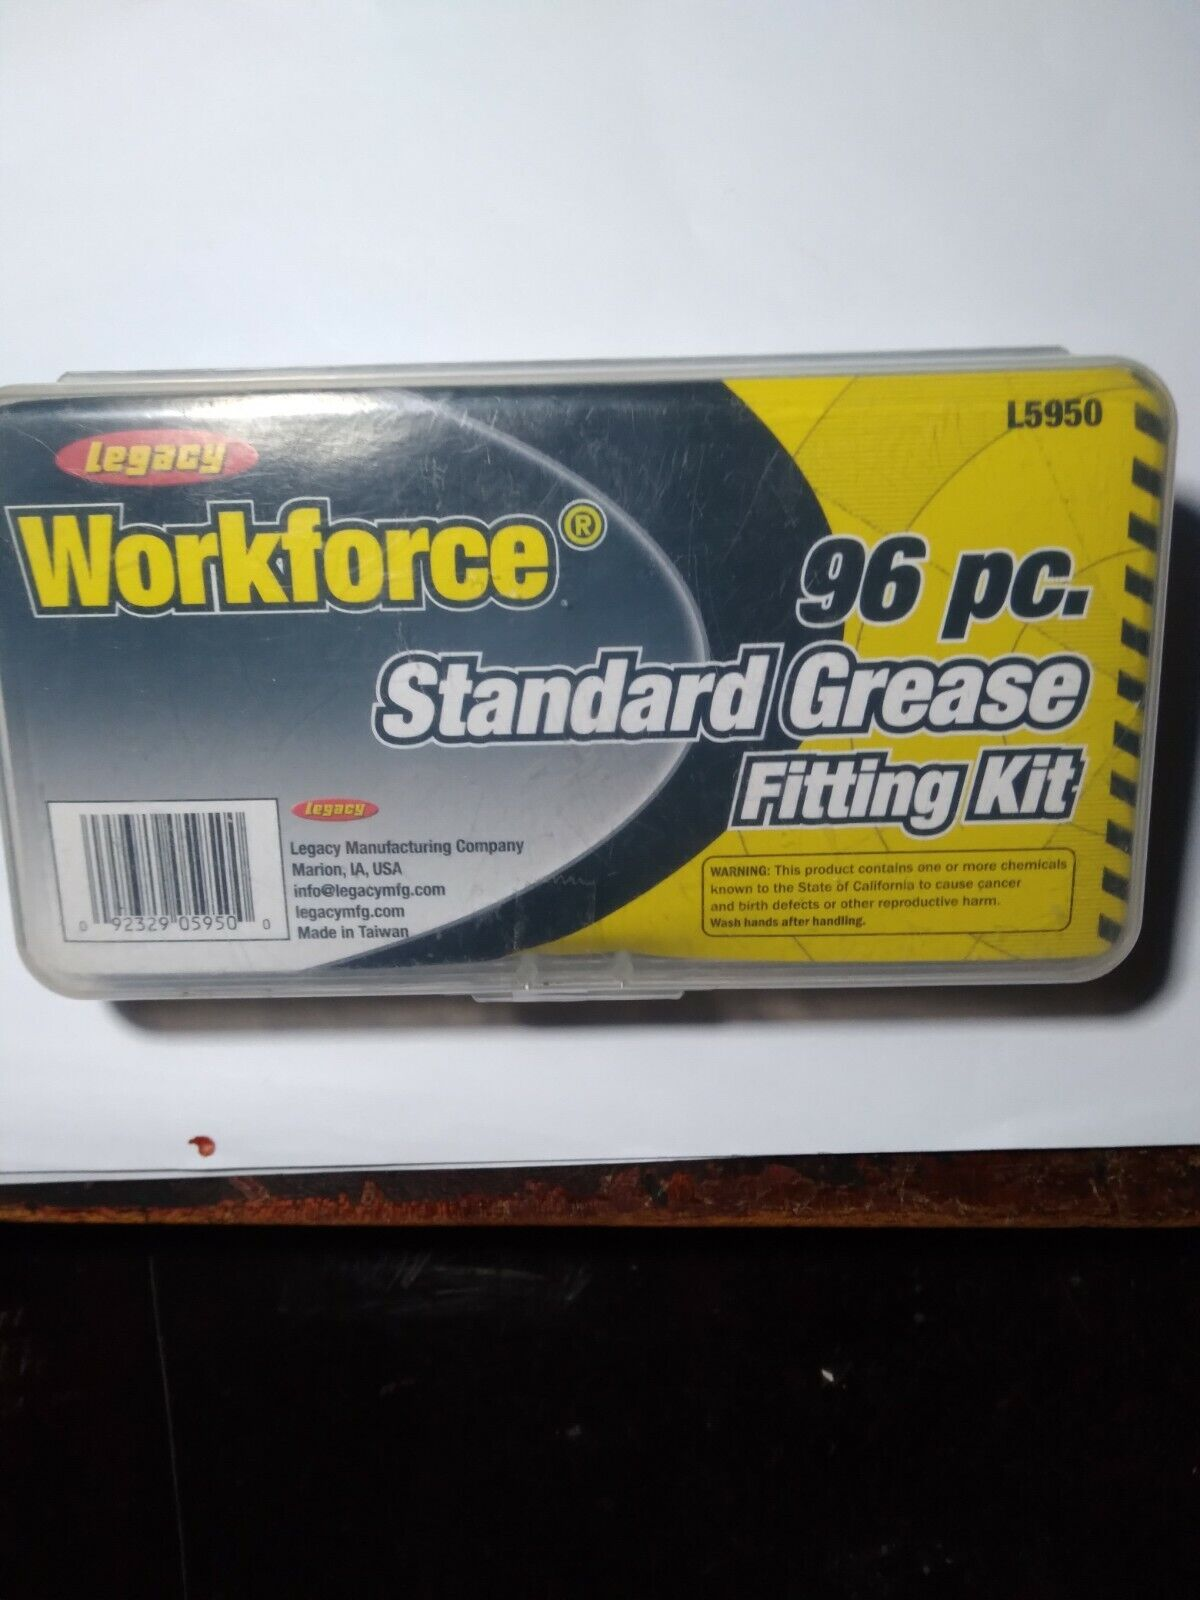 NEW LEGACY WORKFORCE 96PC STANDARD GREASE FITTING KIT L5950